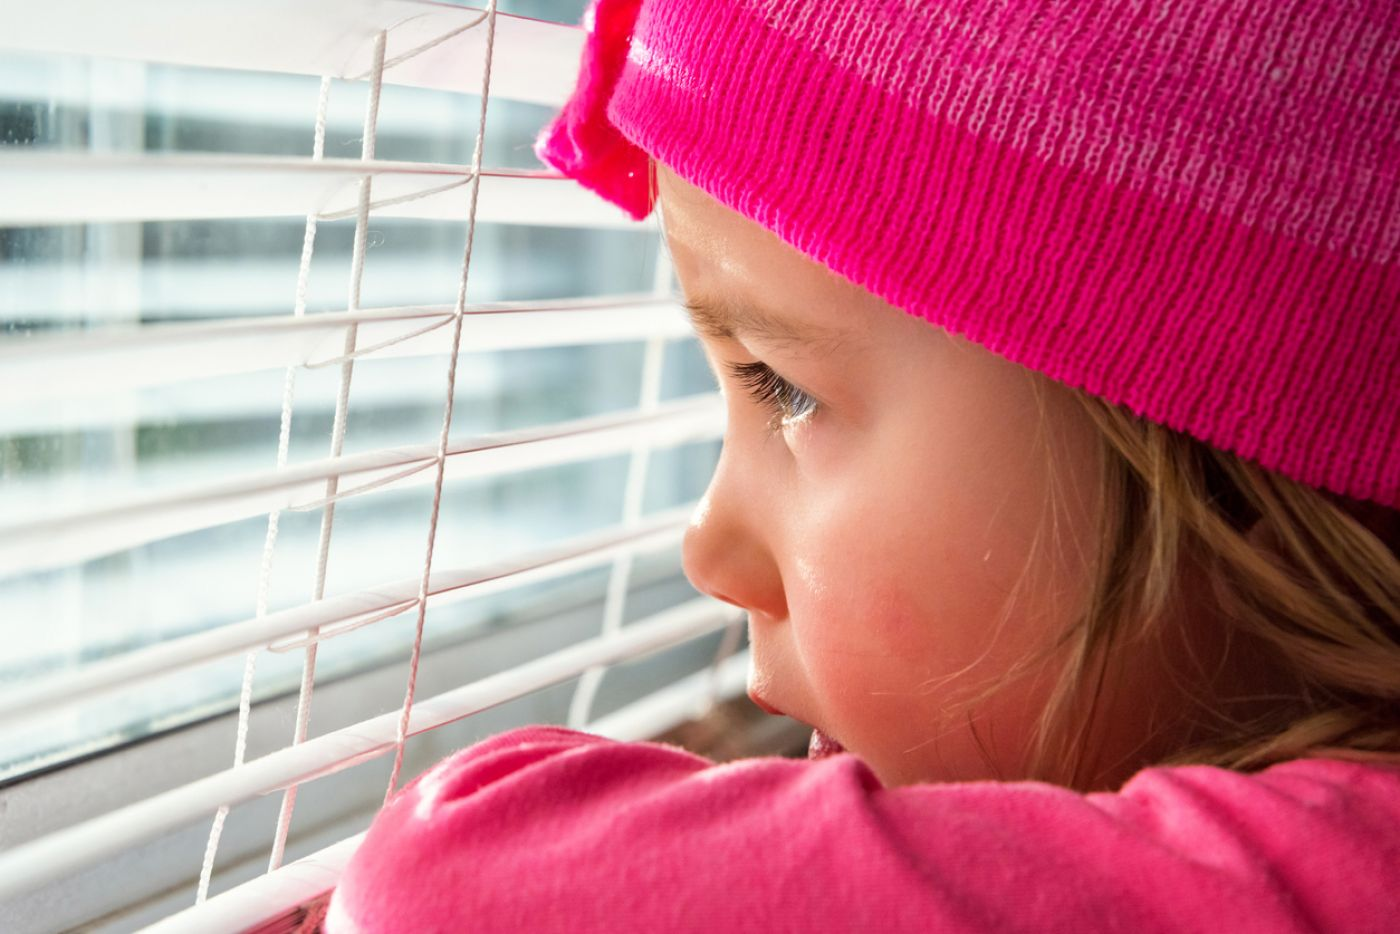 Blinds_and_Child_Safety-3e66f044